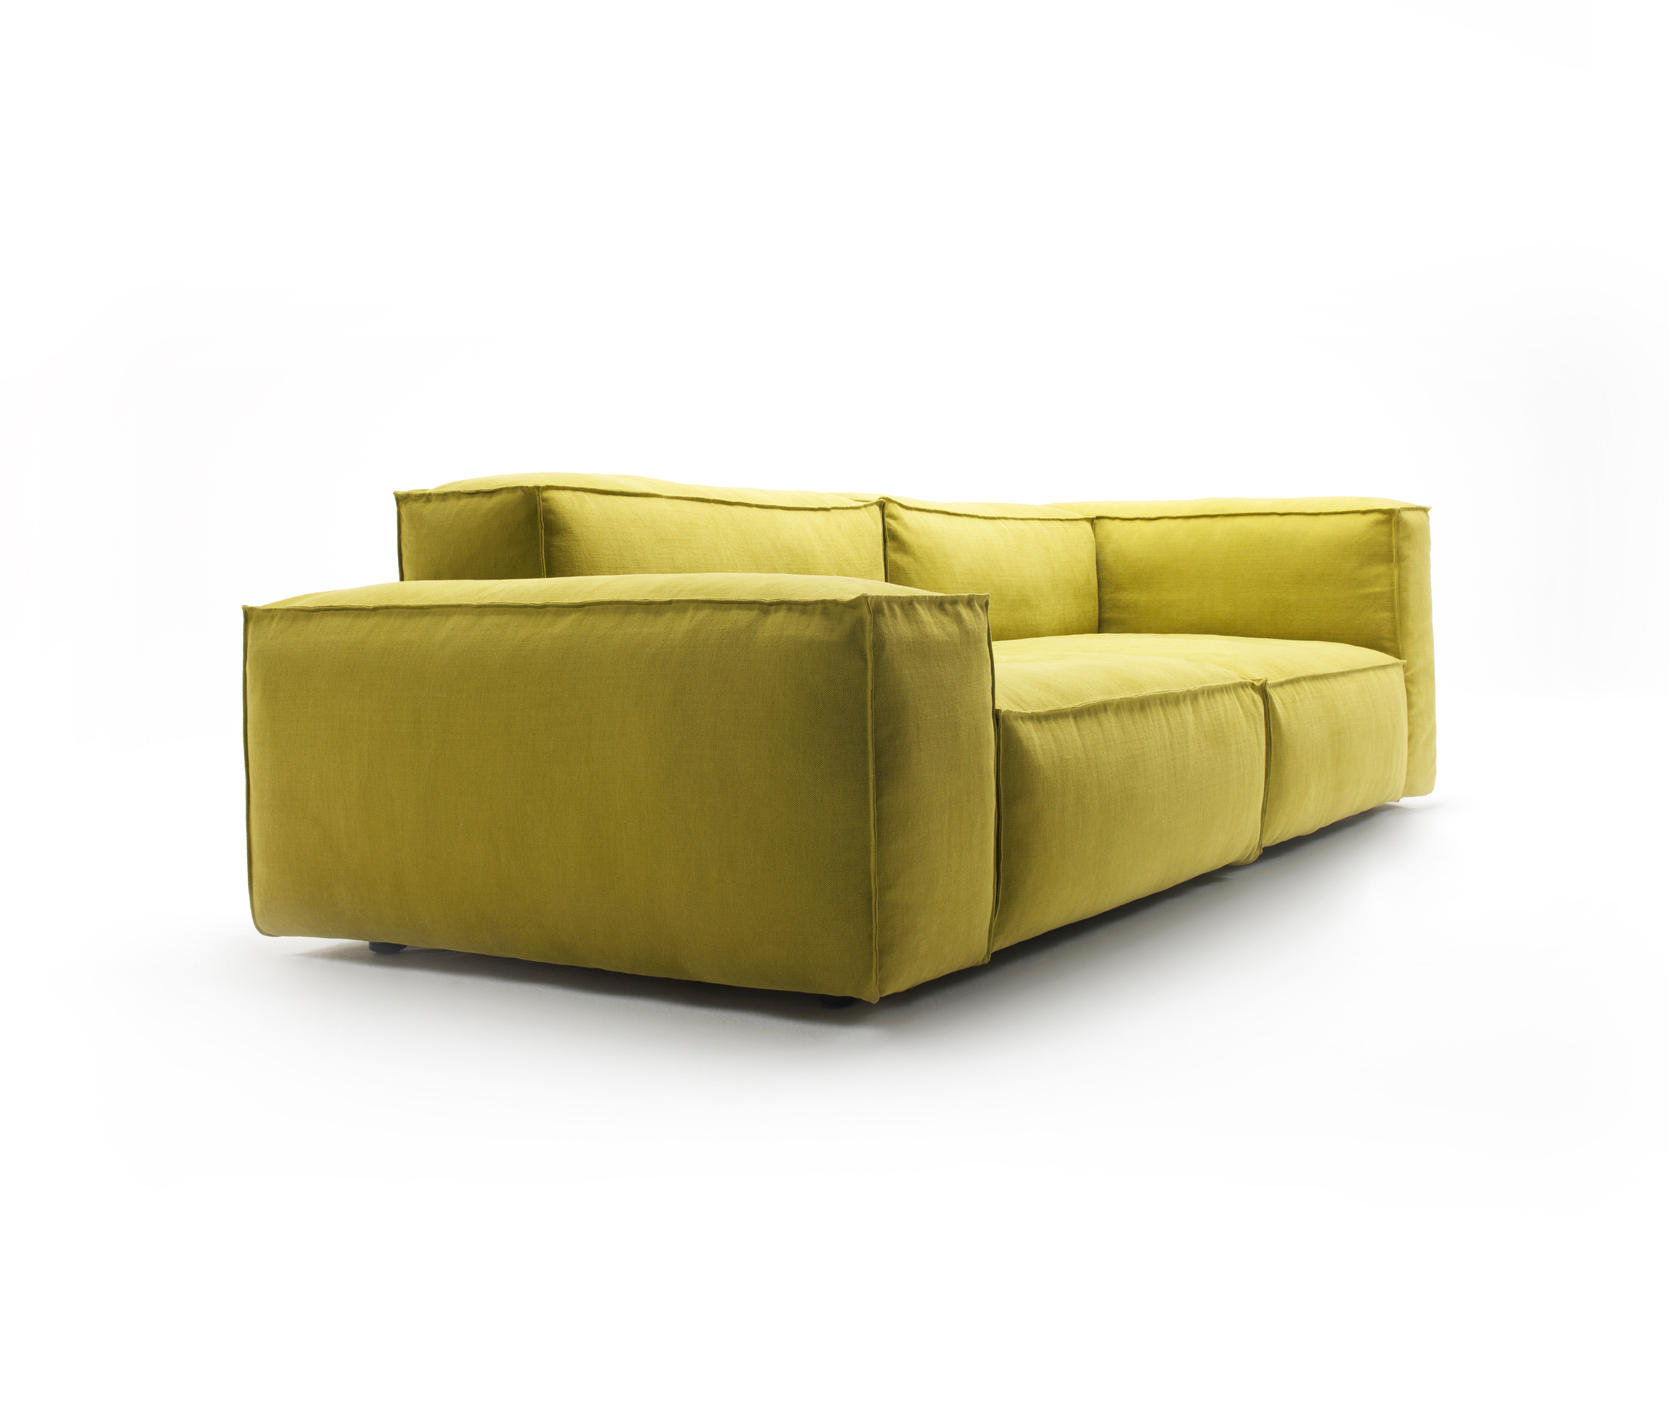 NEOWALL - Lounge sofas from Living Divani | Architonic